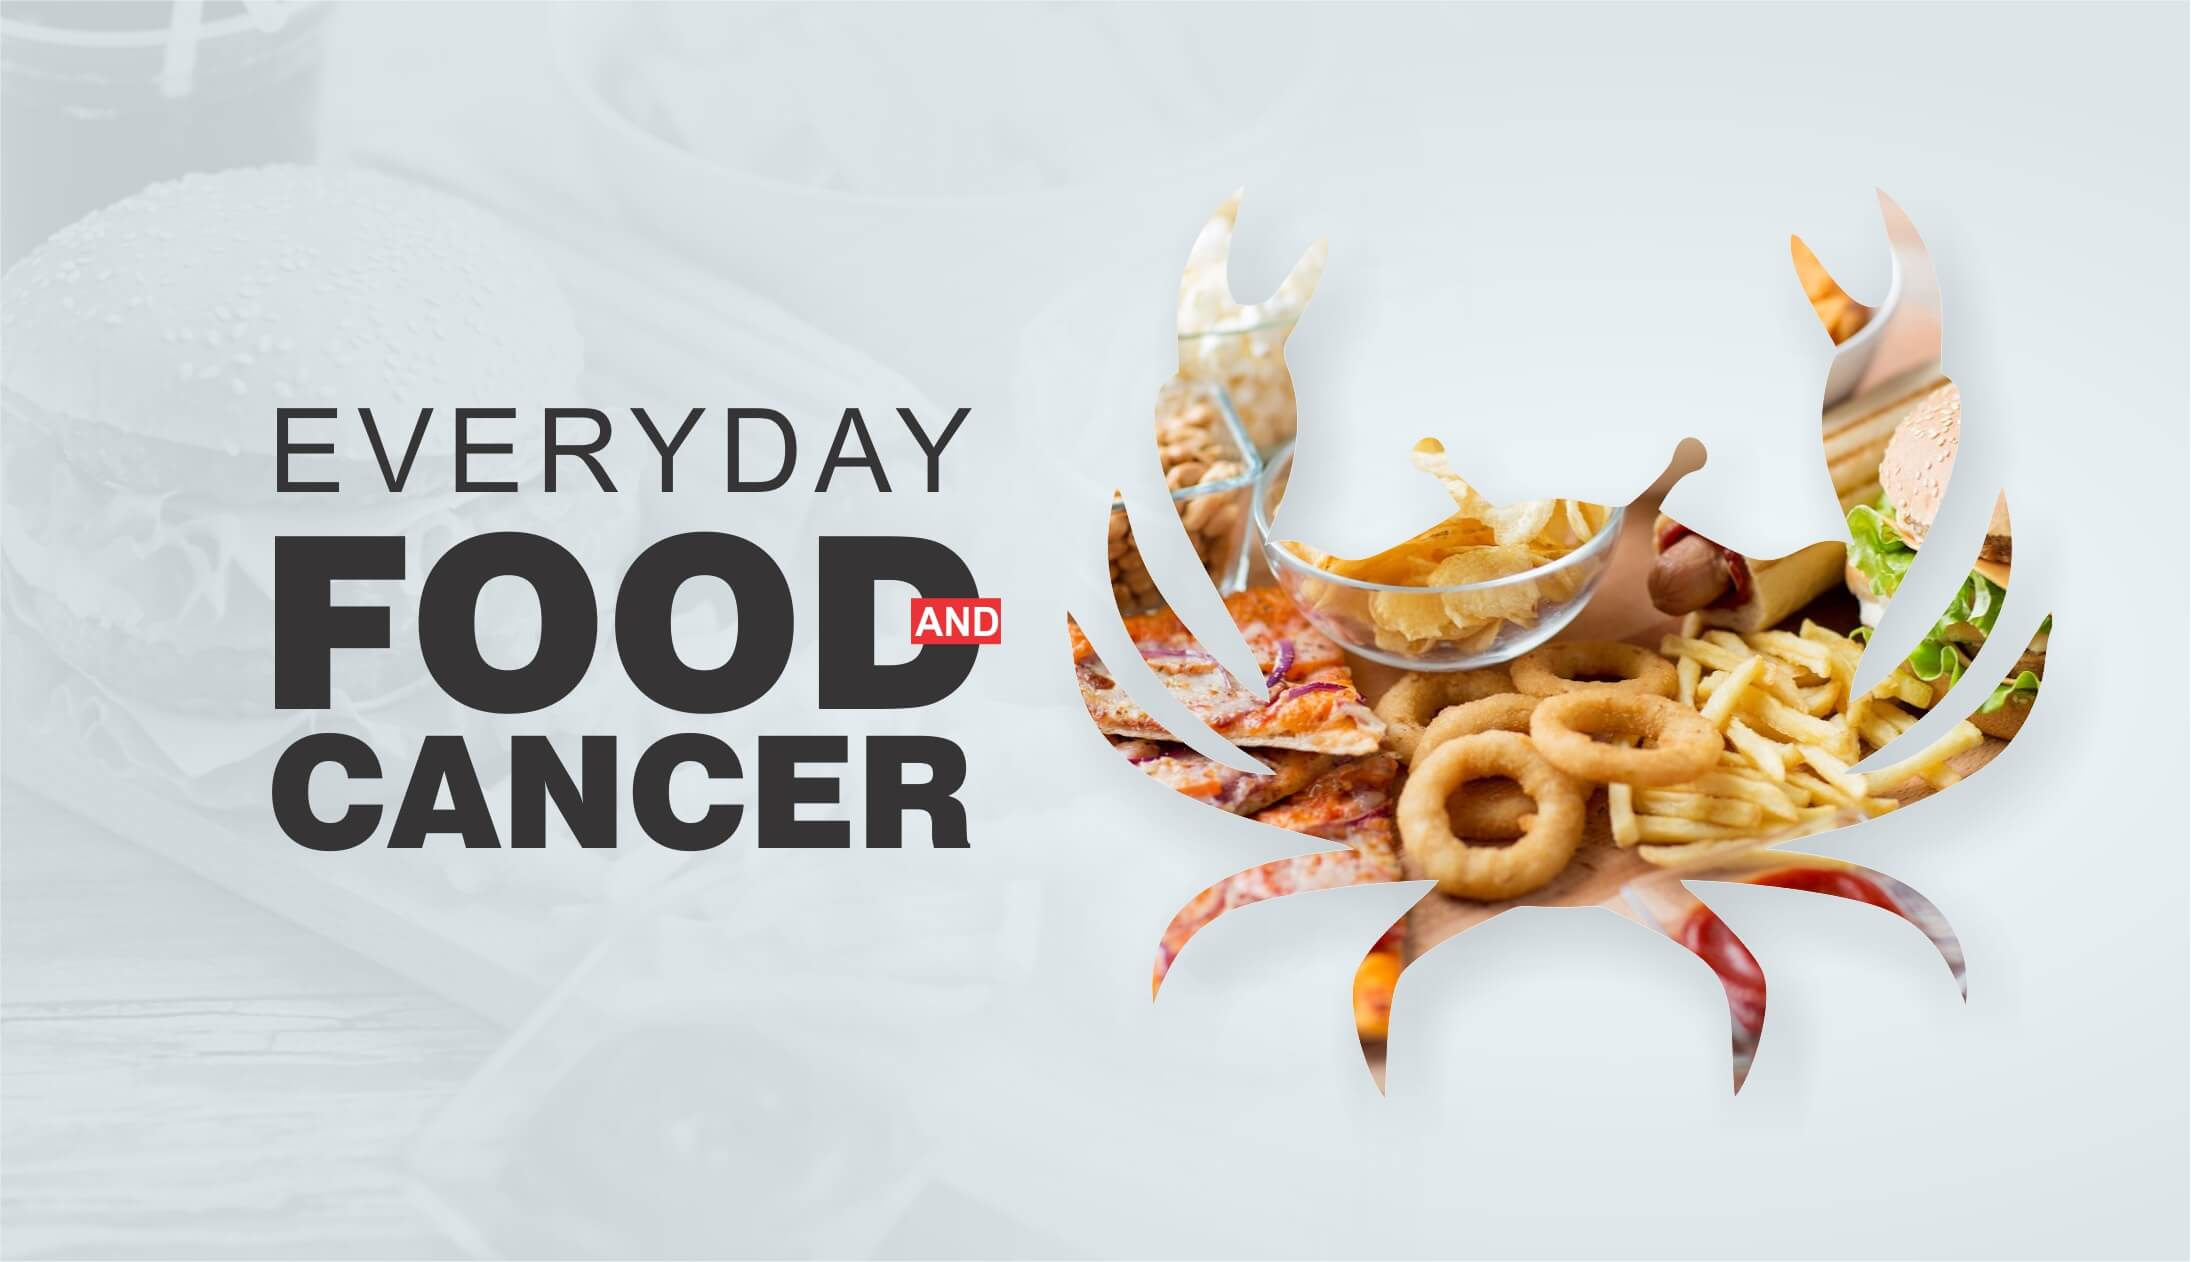 Everyday Food And Cancer